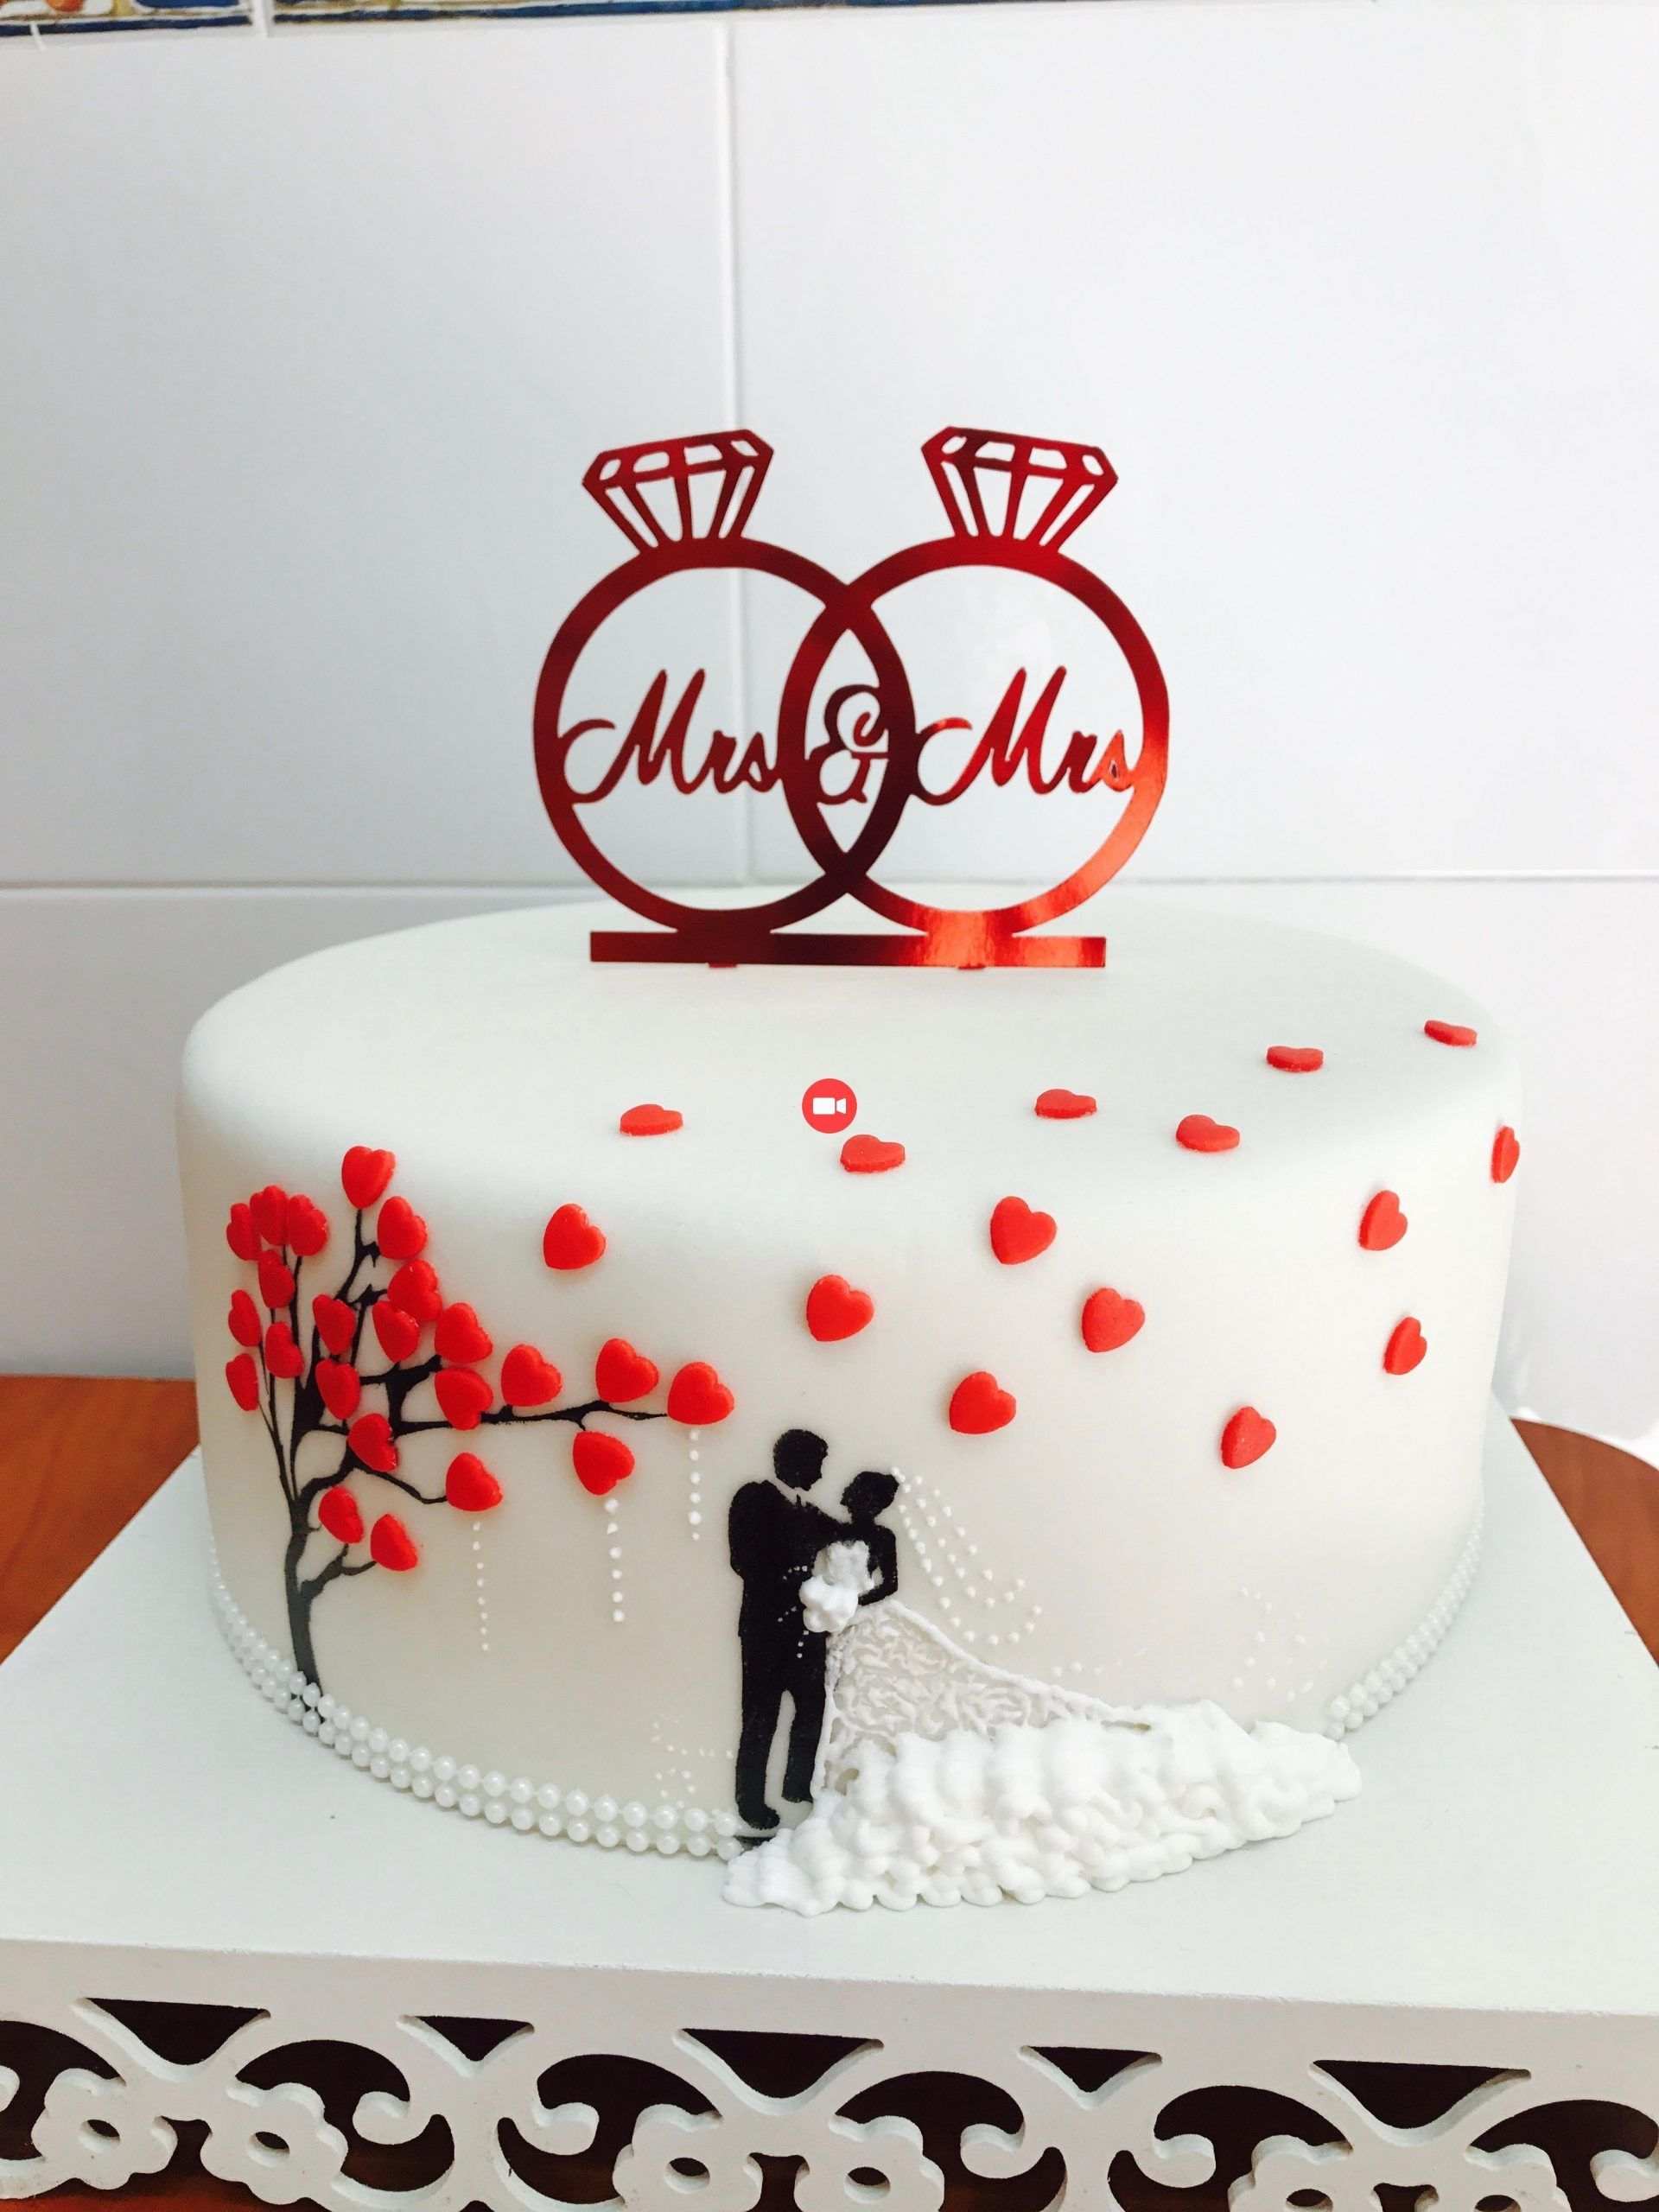 Online Store For Baby Kids Clothes For Nia And Nio Wedding Cakes Baby Cakes Cl Engagement Cake Design Wedding Anniversary Cakes Anniversary Cake Designs